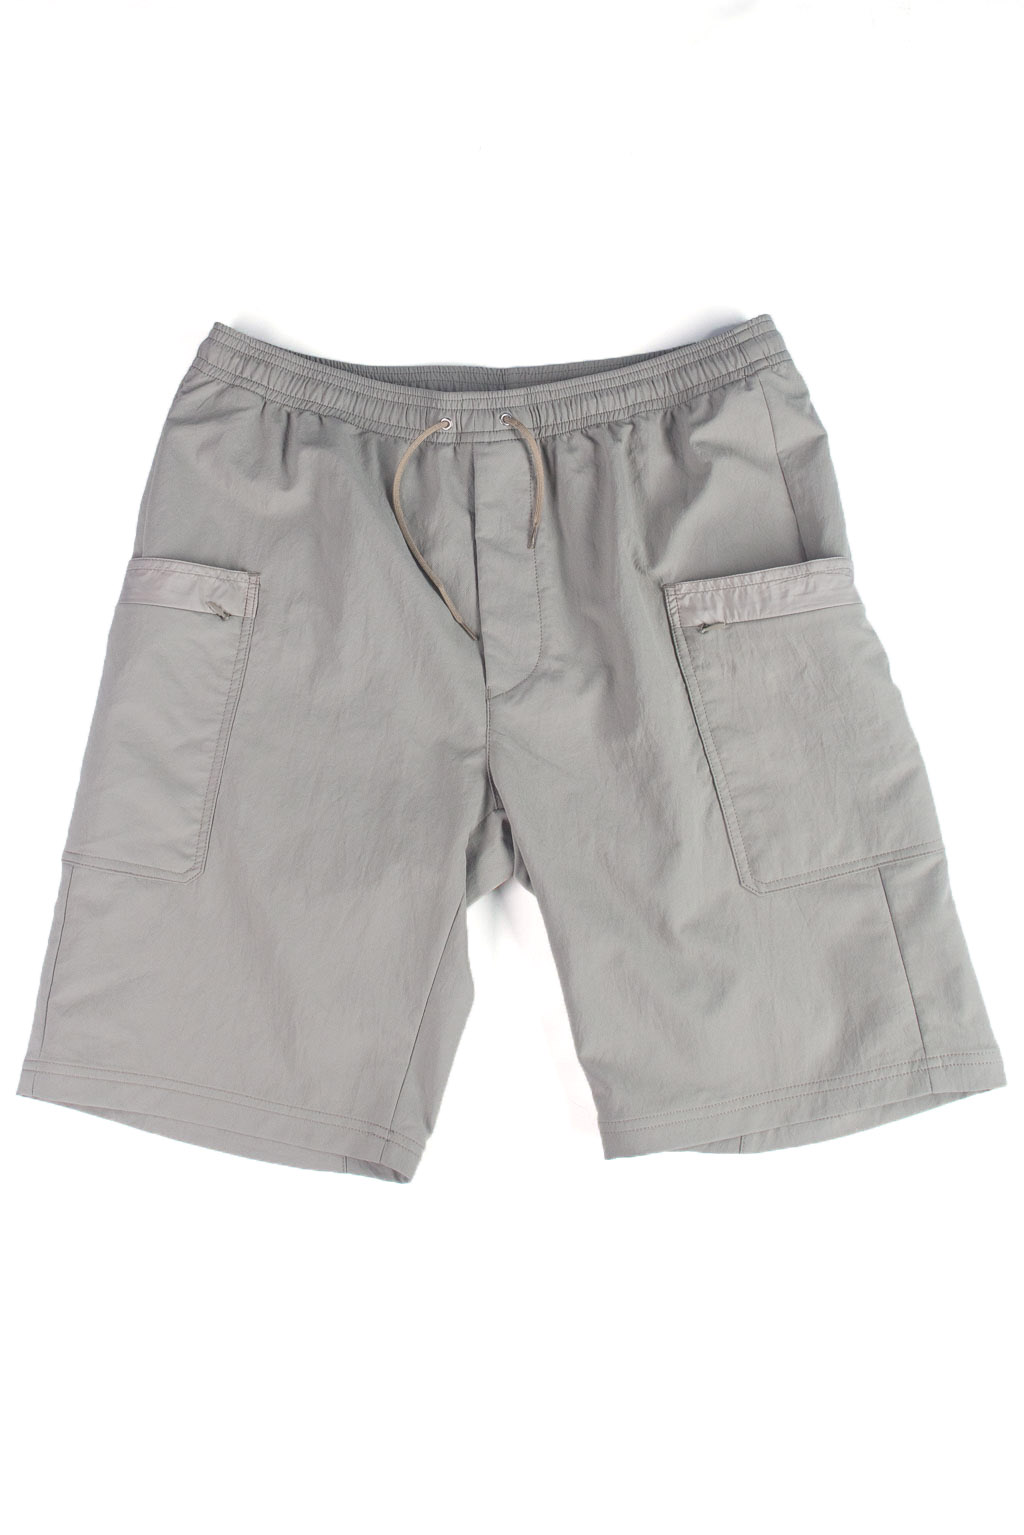 Alphadry Easy Shorts - Taupe